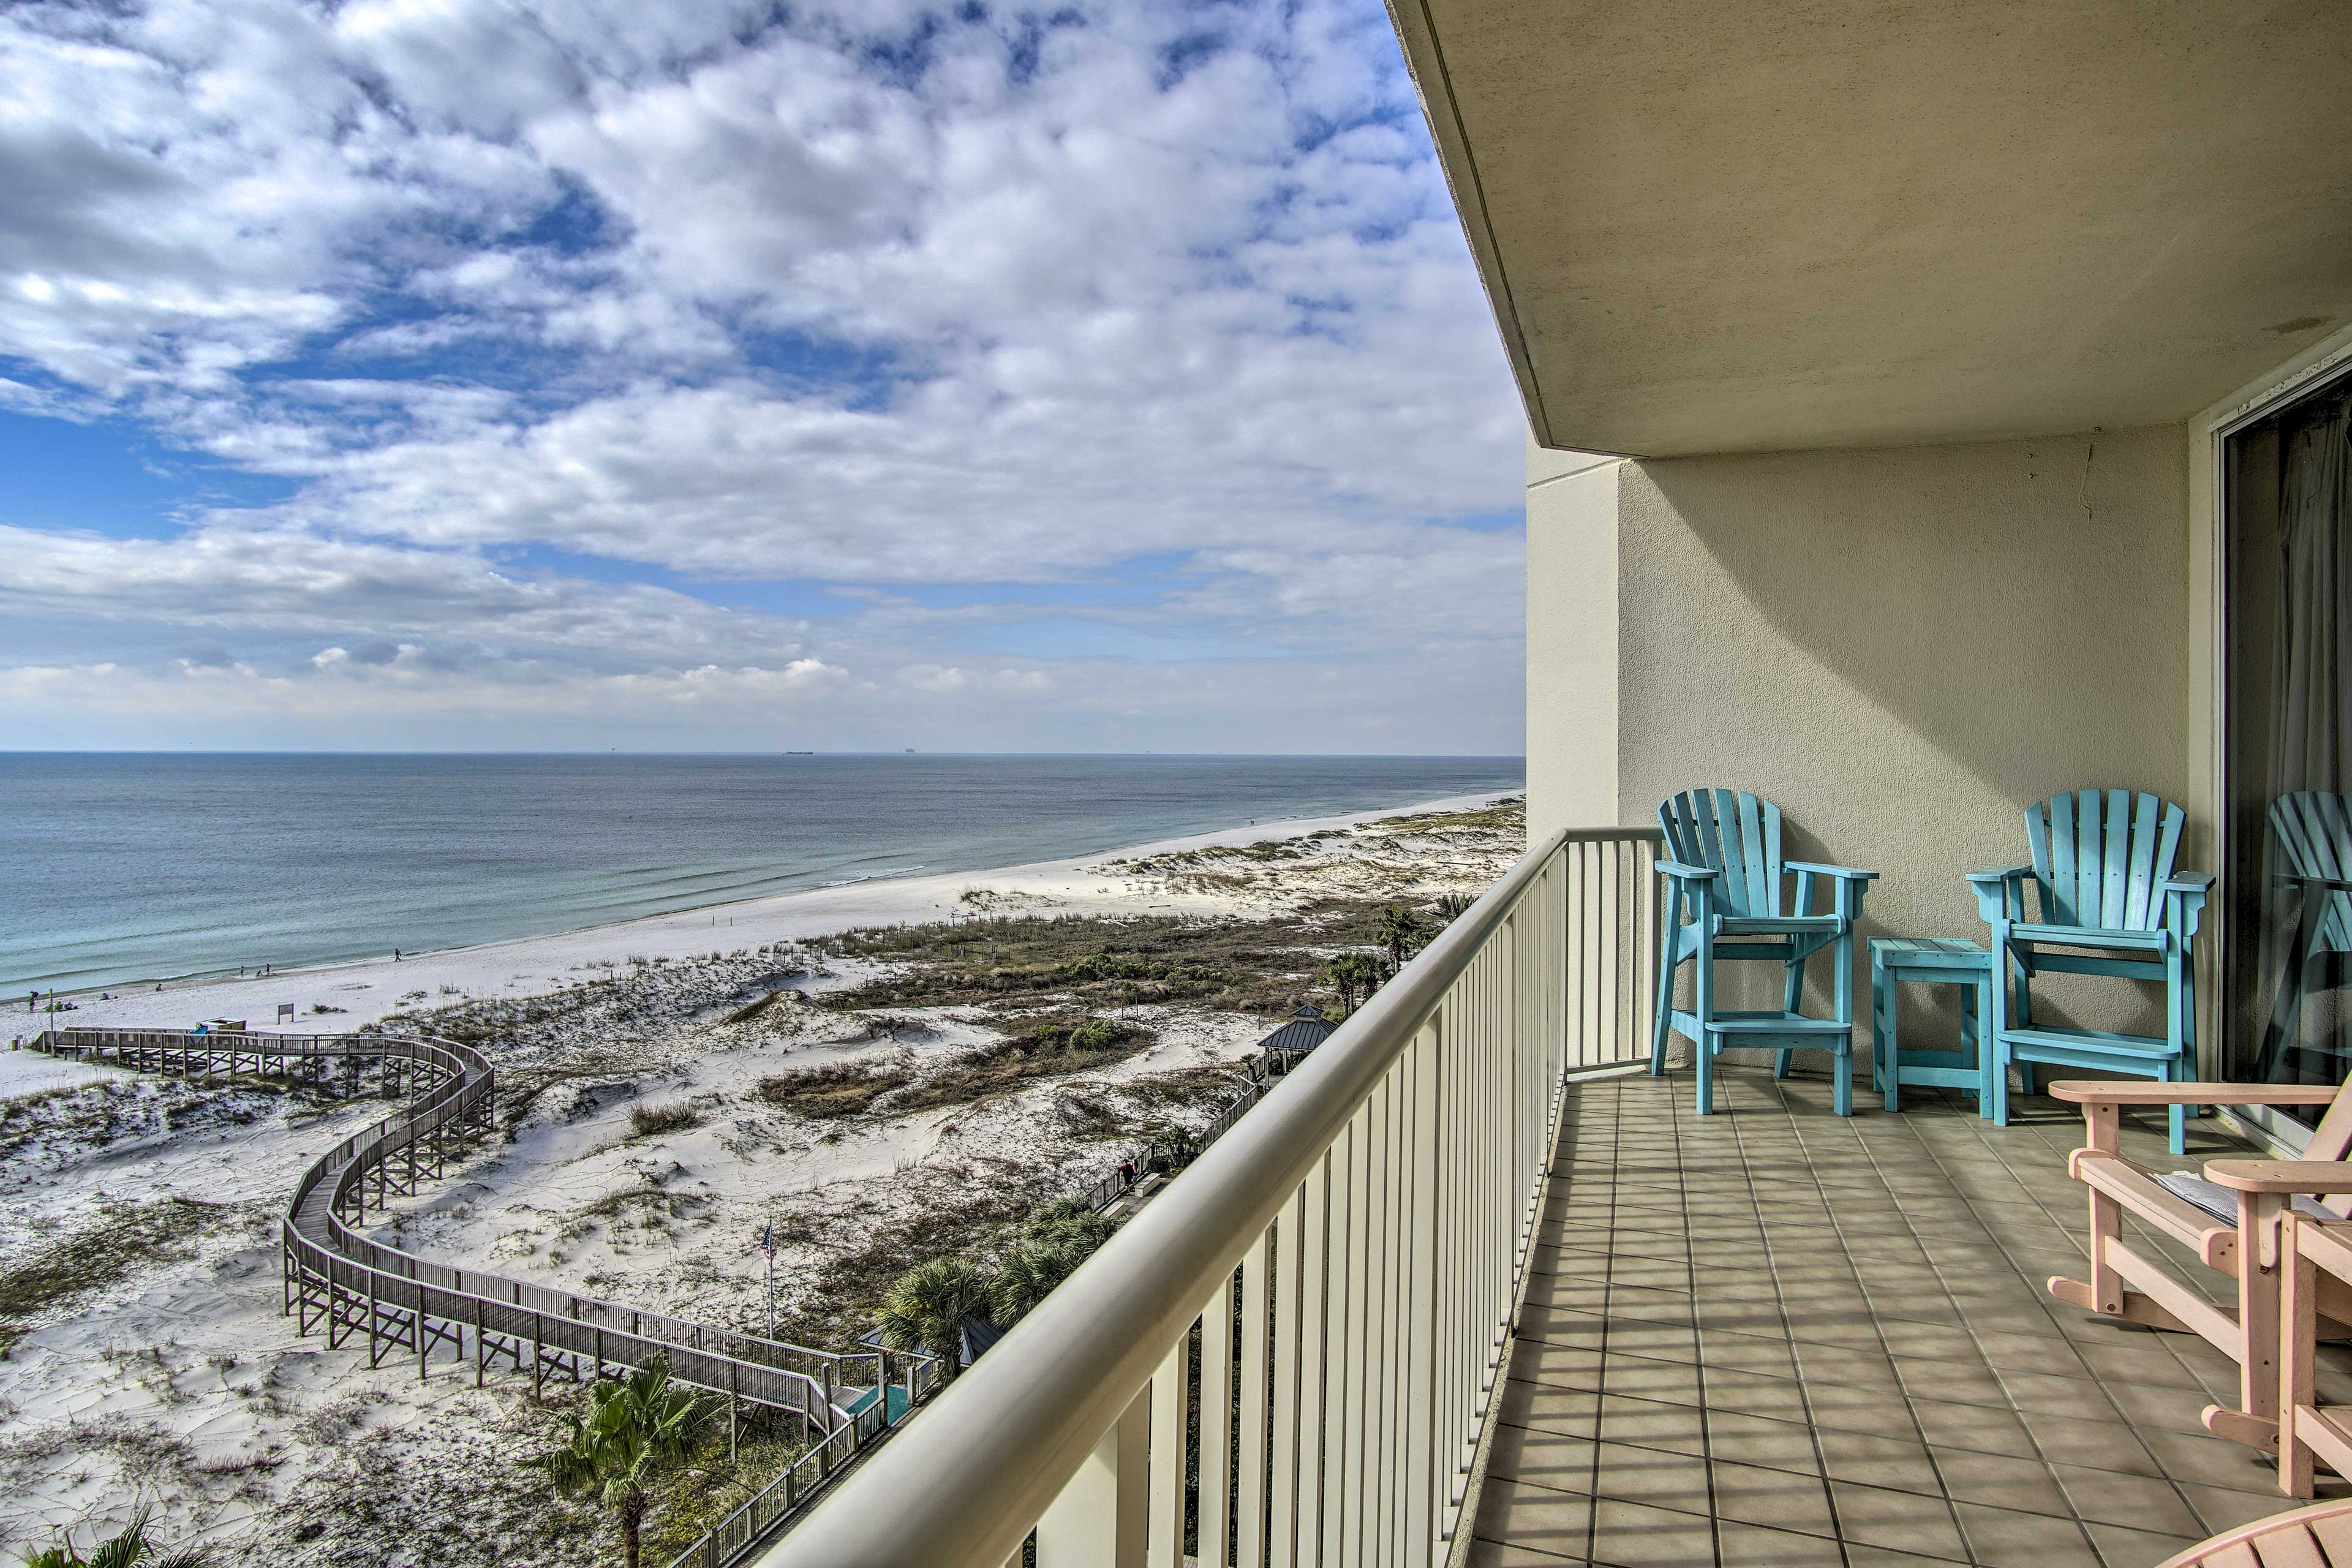 Fall in love with Gulf Shores from this luxury vacation rental condo!